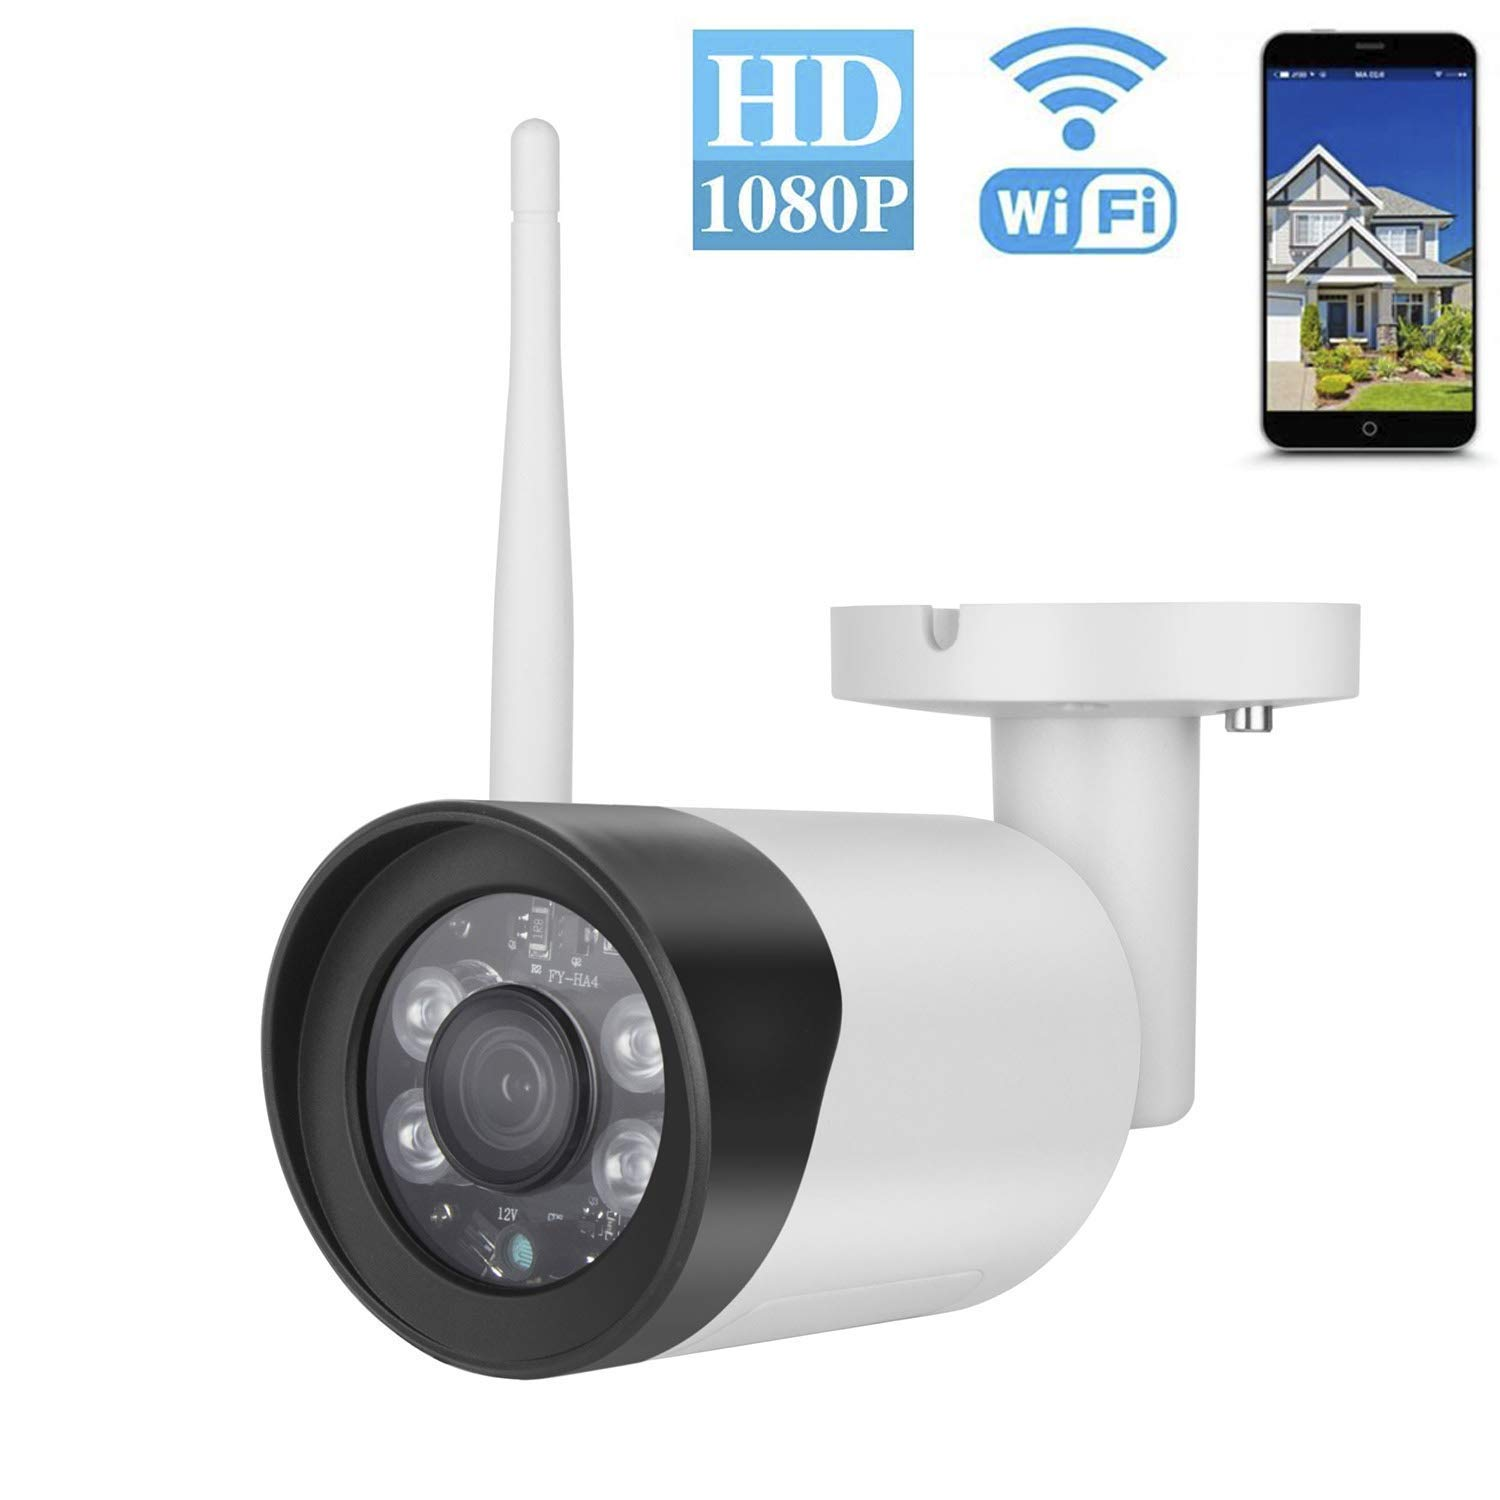 Outdoor Security Camera, 1080P WIFI Outdoor Camera with Two-Way Audio, IP66 Waterproof, Motion Detection, Night Vision, Remote Viewing Wireless IP Security Surveillance Cameras,SD Card Storage by WGCC